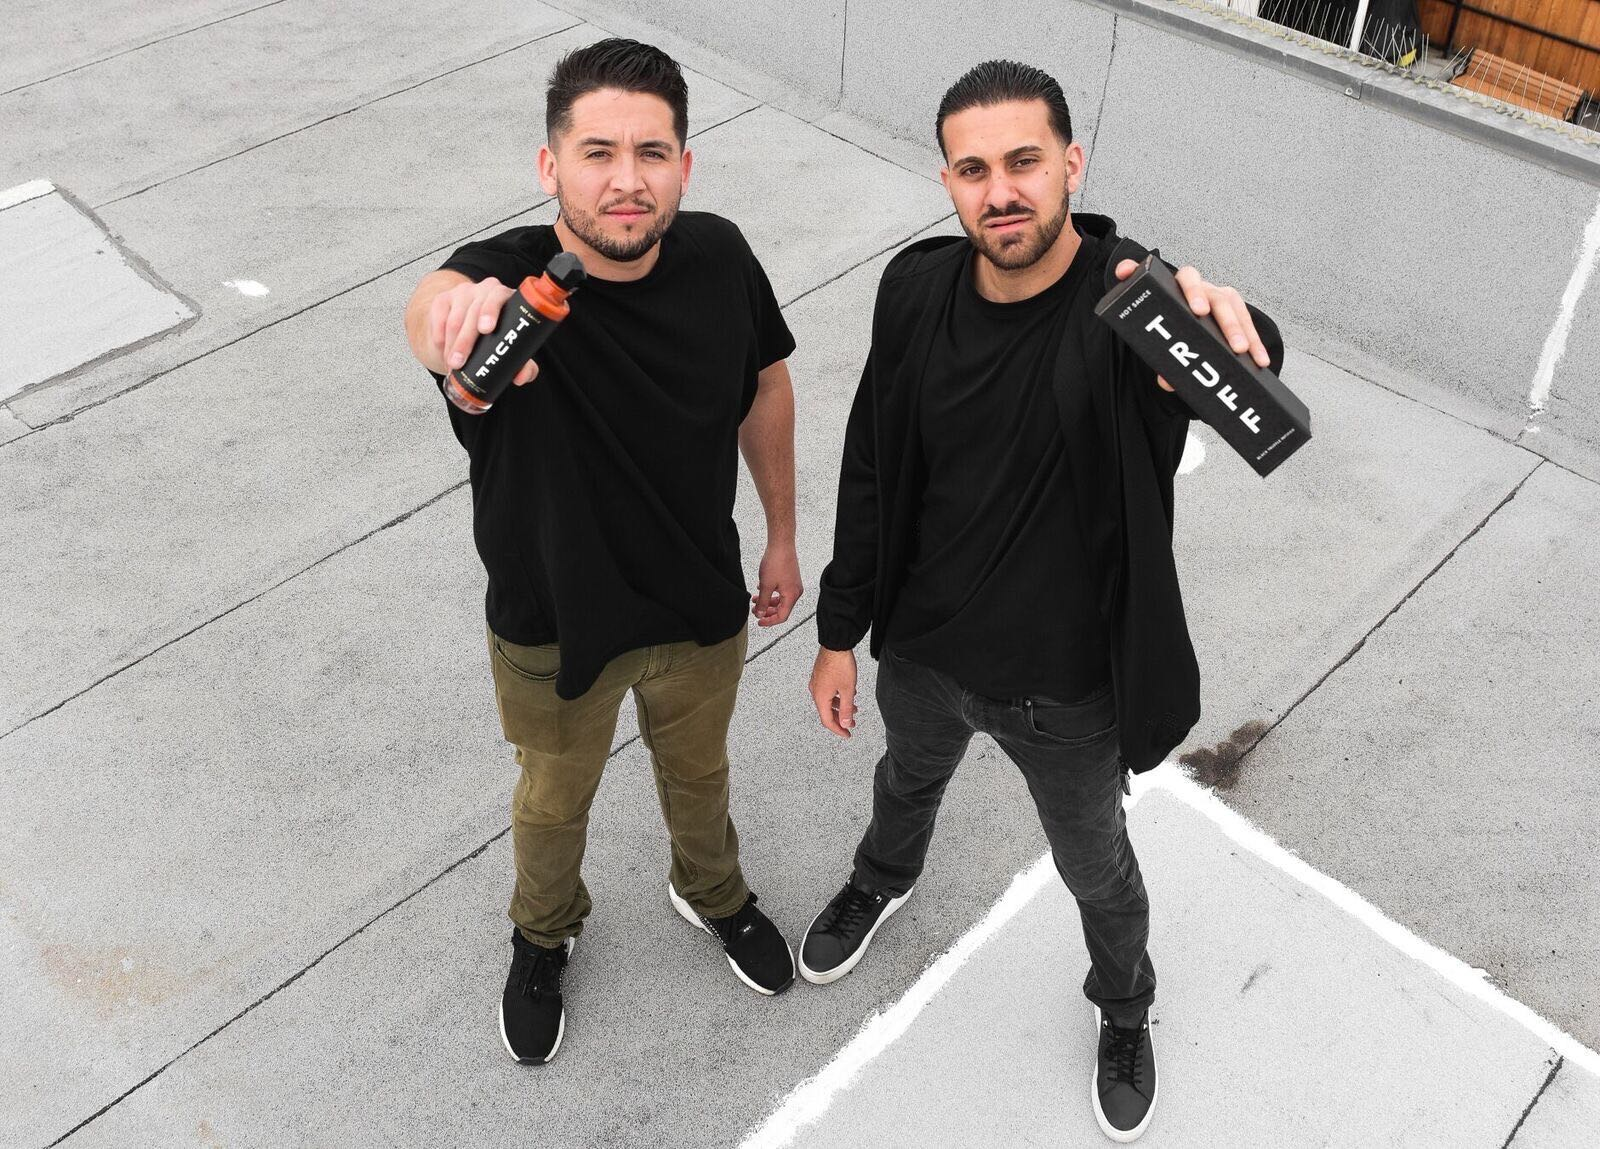 Nick Guillen and Nick Ajluni with Truff hot sauce.